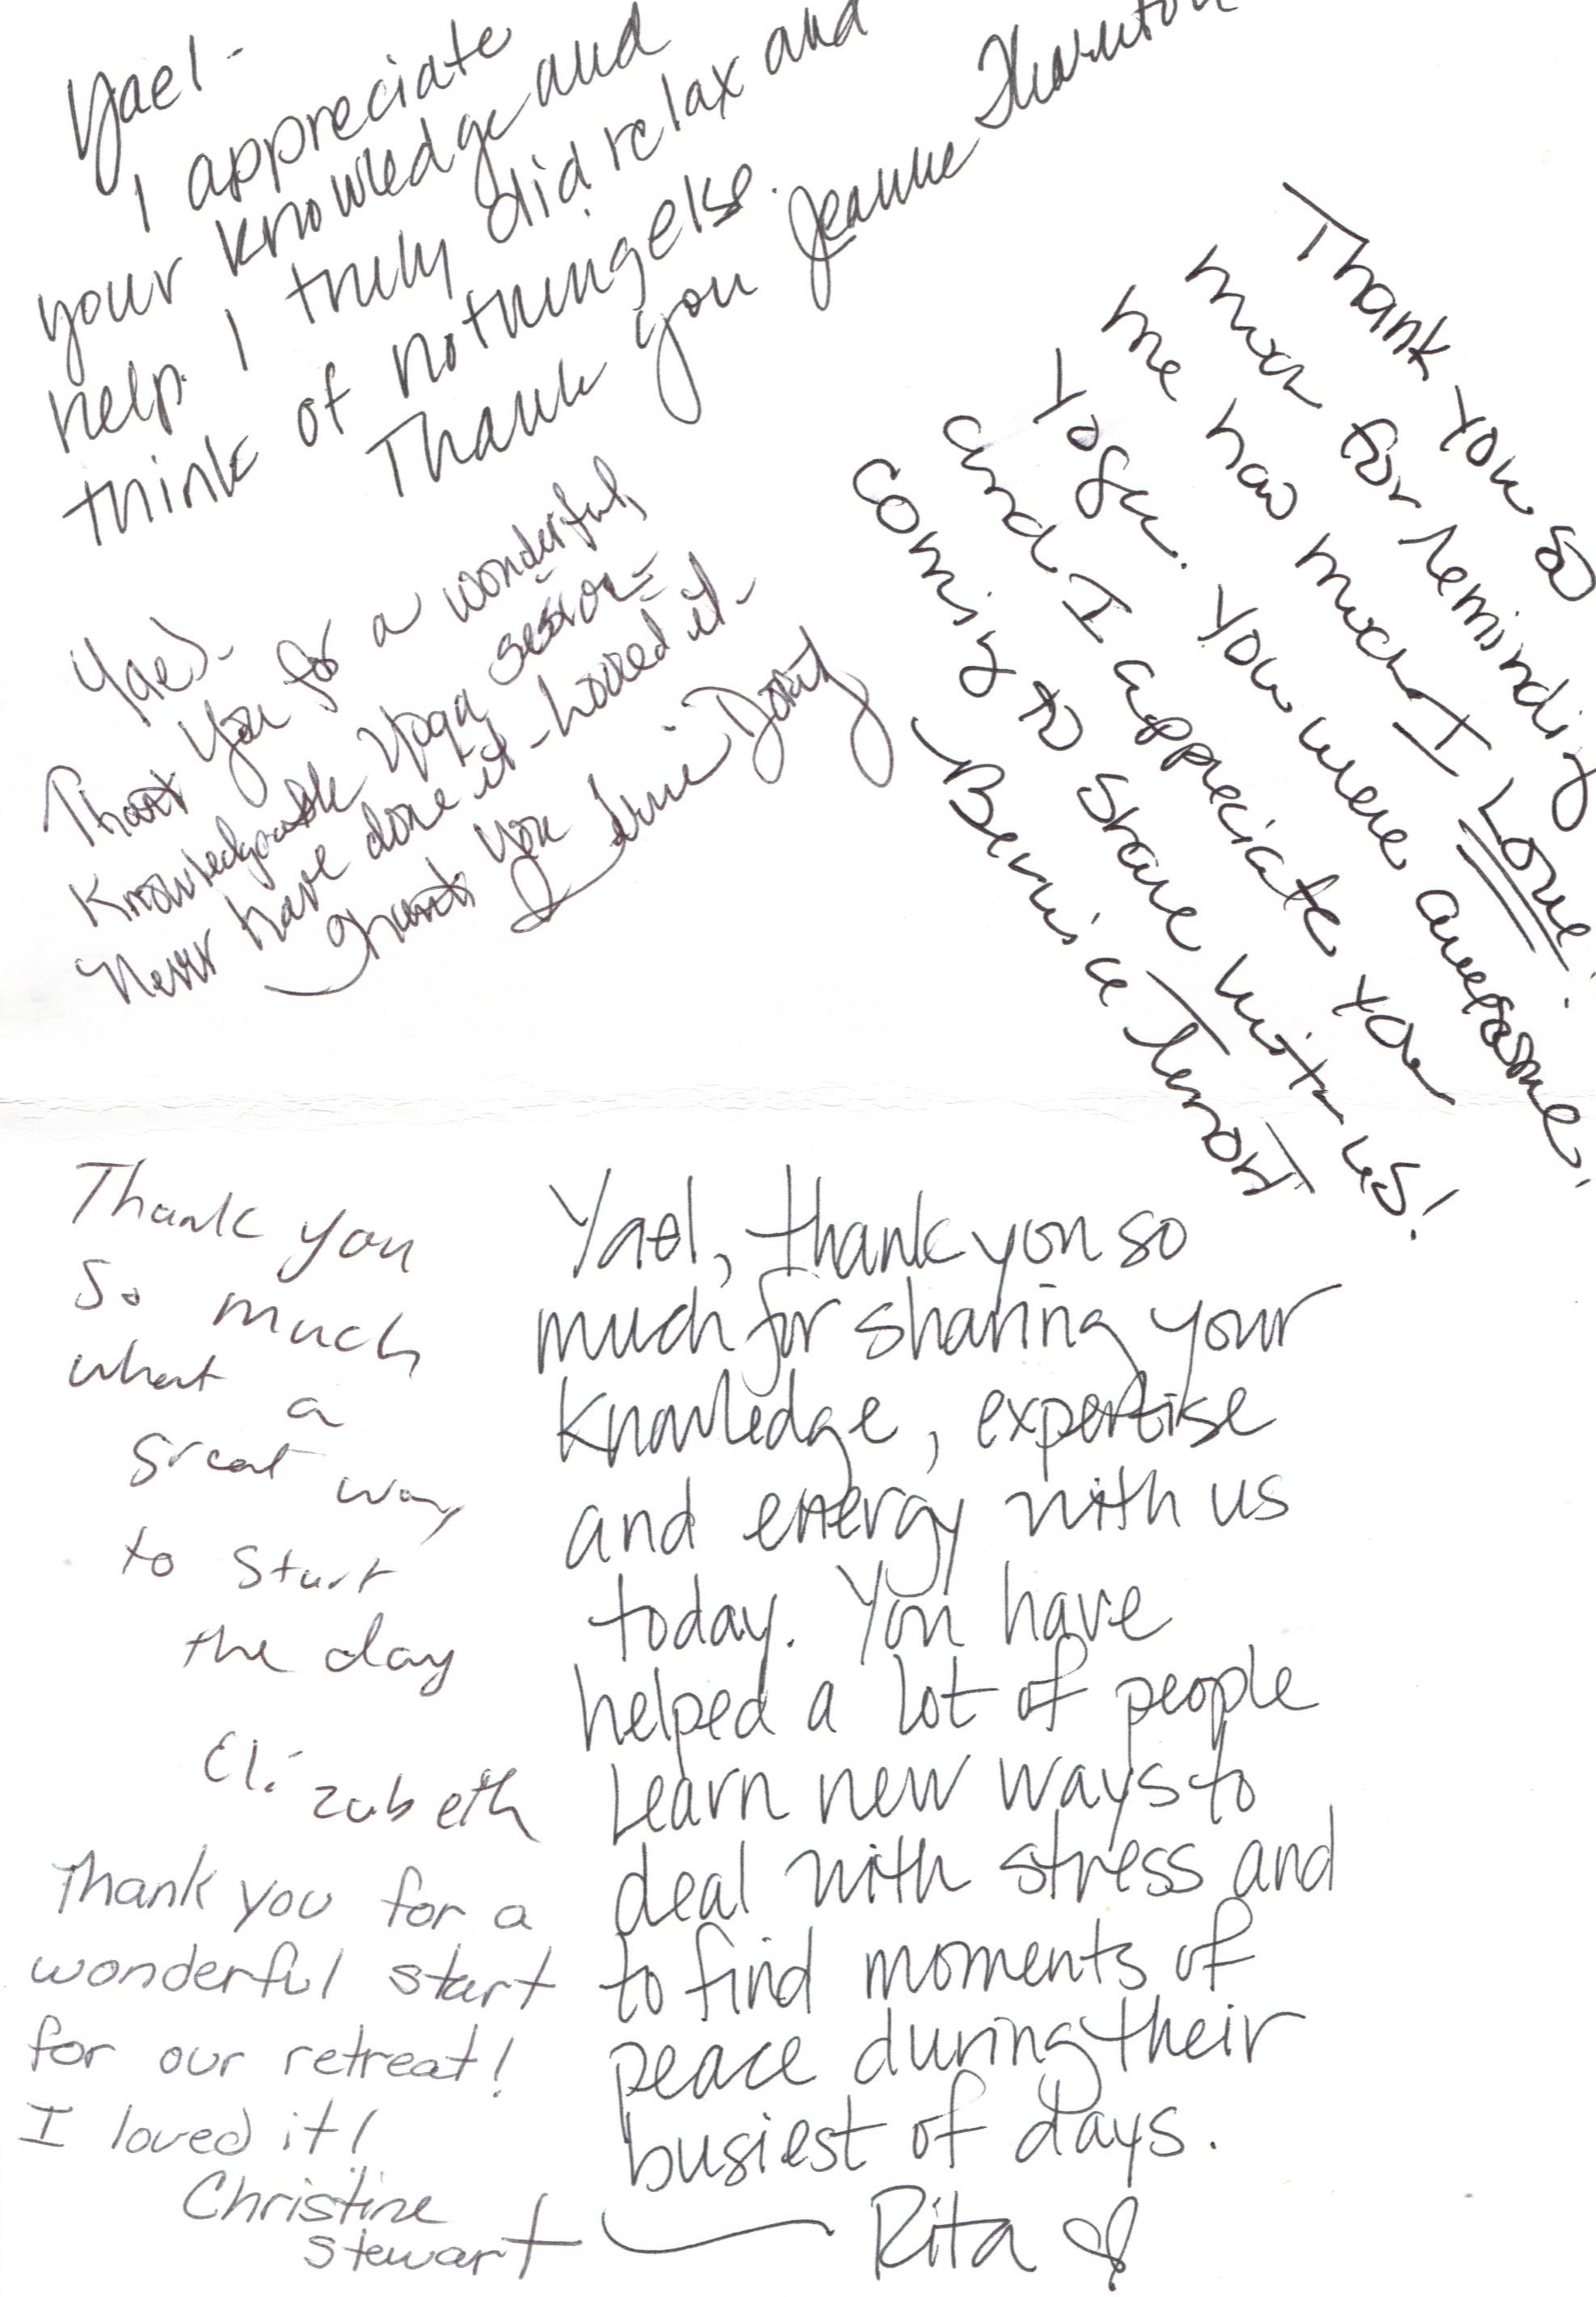 Handwritten notes from the nurses at the U of U